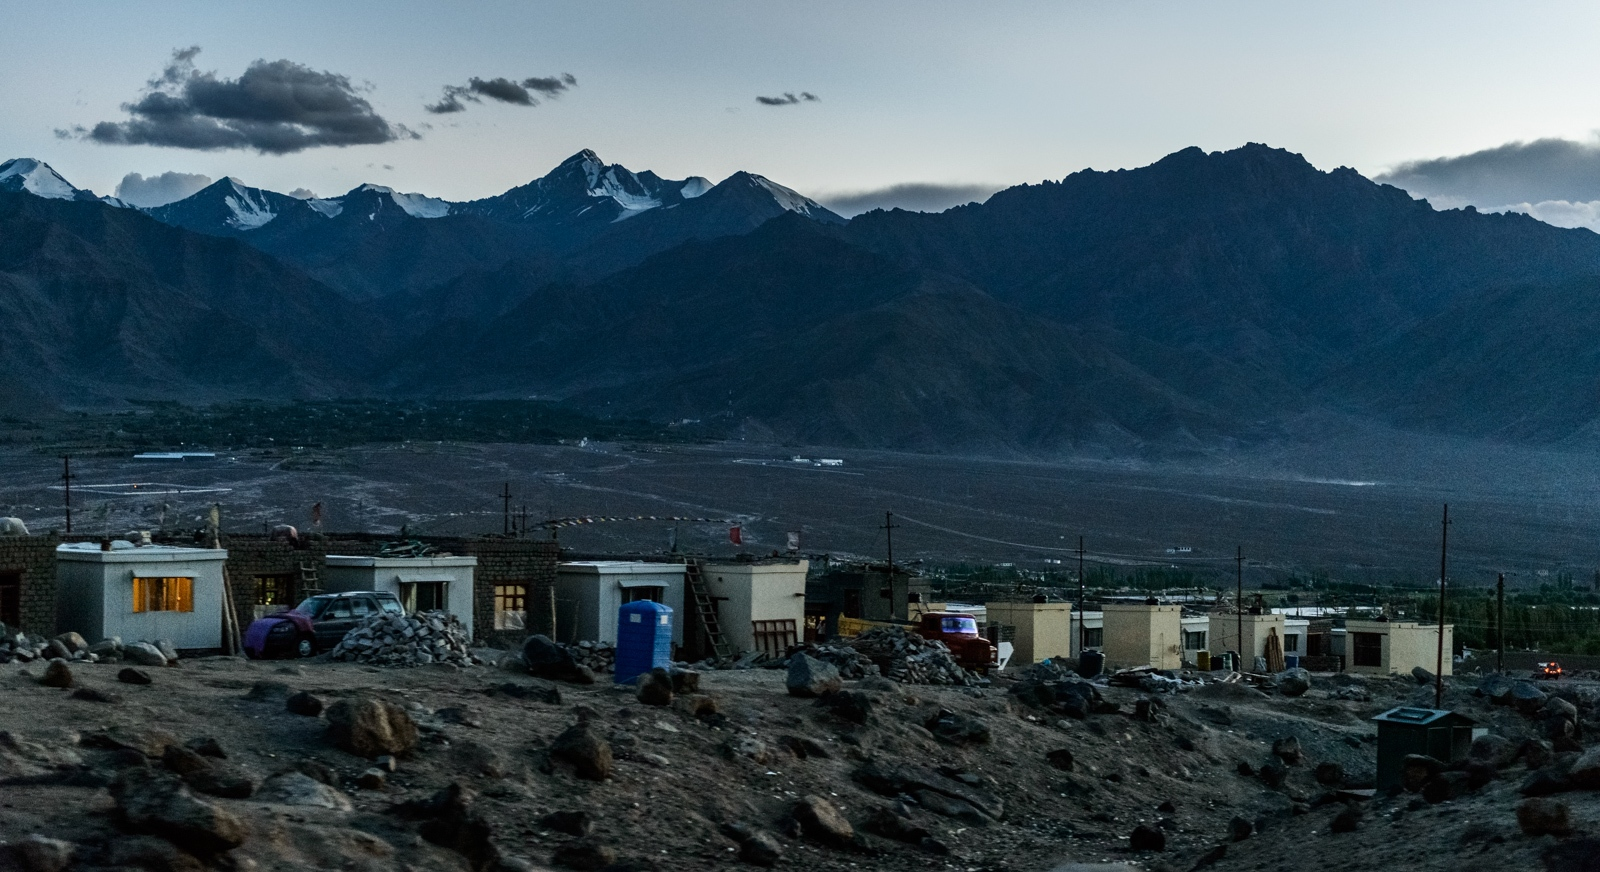 Provisional housing units provided by the local government in Choglomsar, Ladakh, to the families who had lost their homes and their loved ones during the catastrophic 2010 'cloudburst' event.